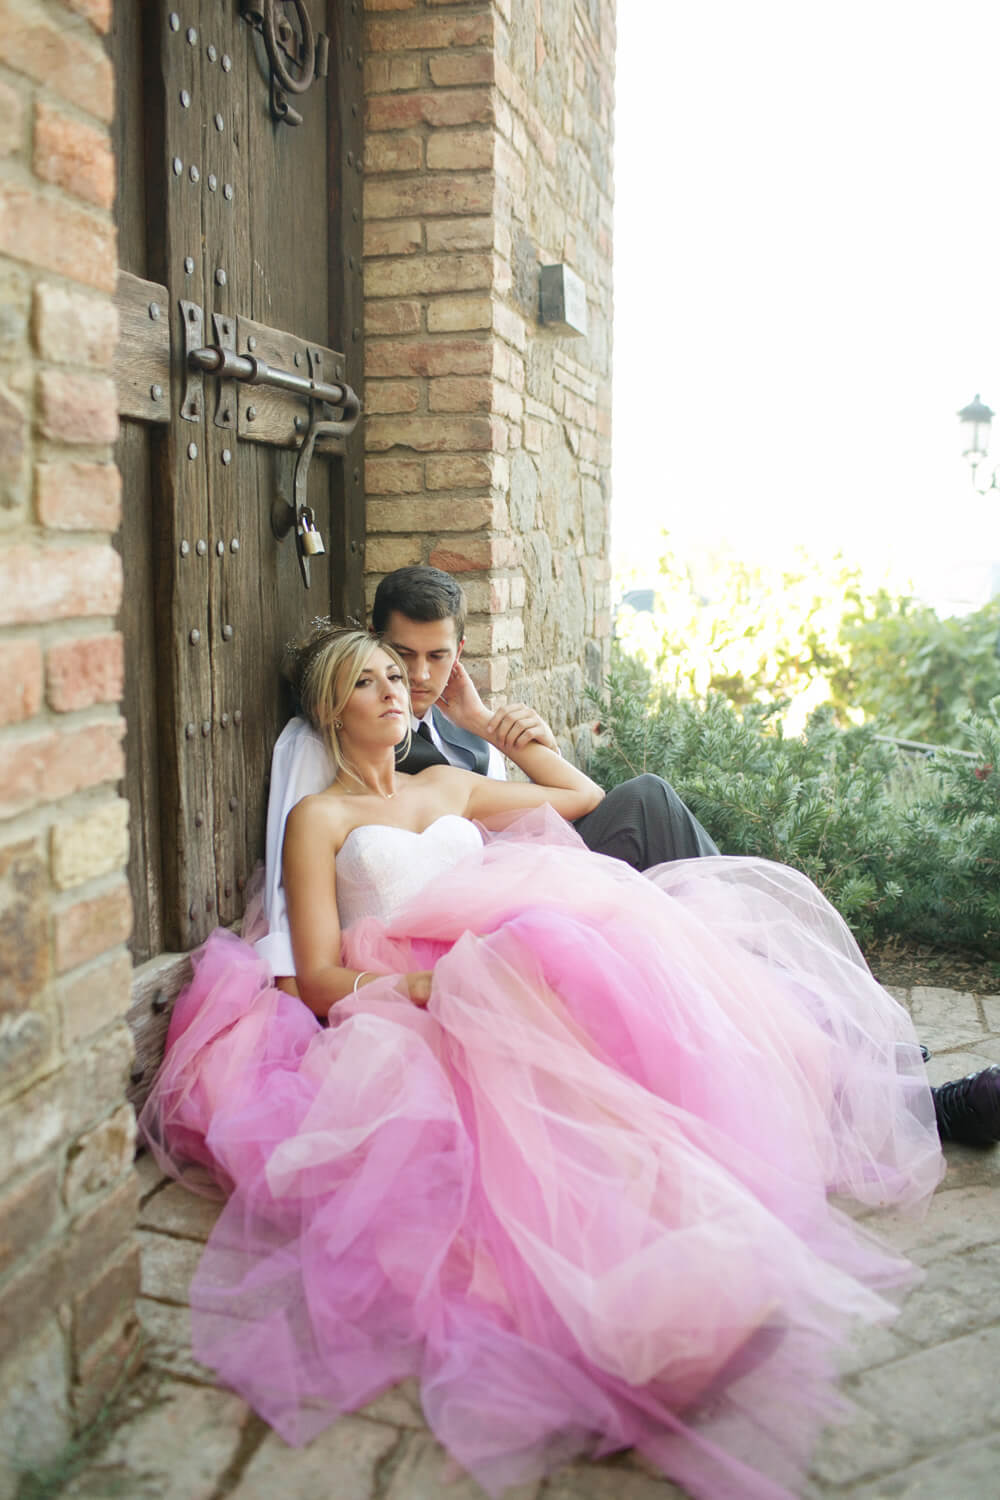 fairy tale engagement shoot with pink ball gown